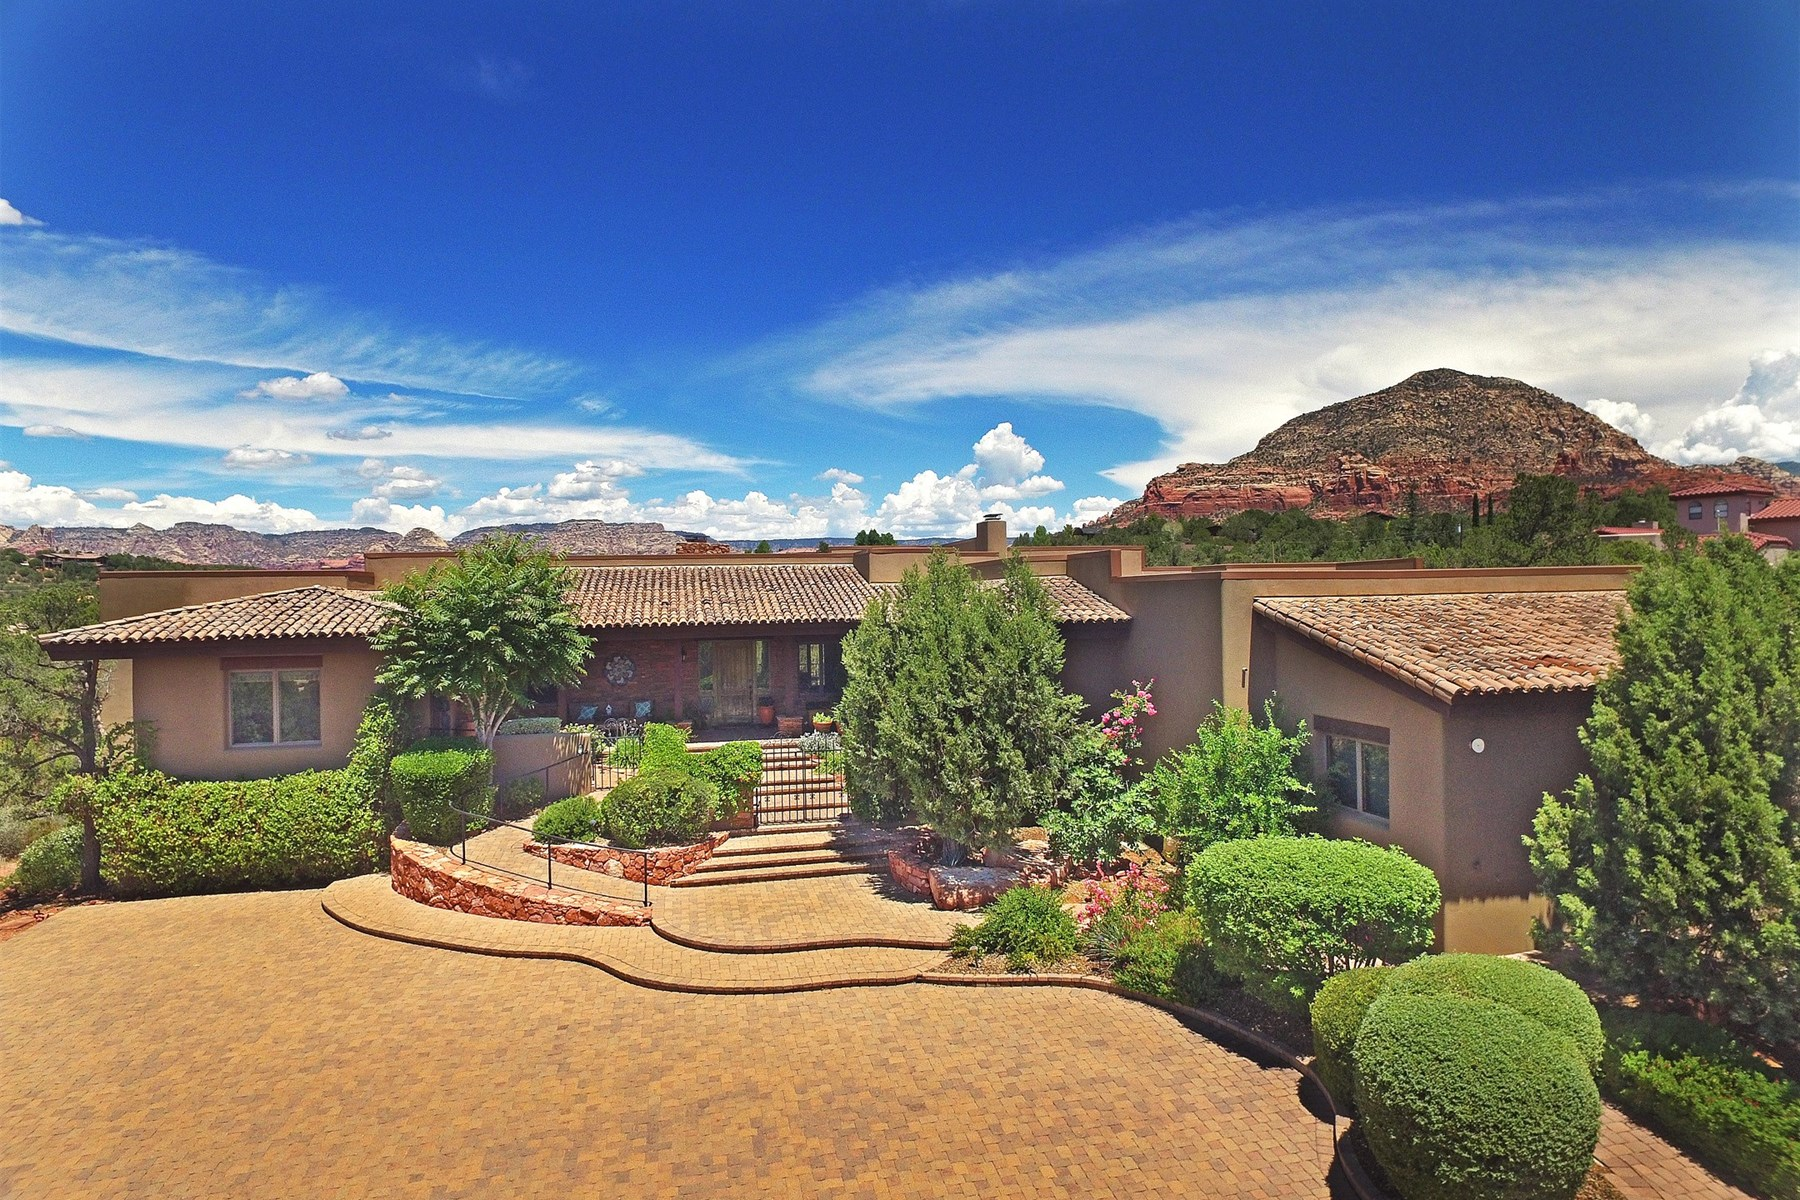 Casa Unifamiliar por un Venta en Gorgeous custom-designed luxury home 41 E Dove Wing Drive Sedona, Arizona 86336 Estados Unidos